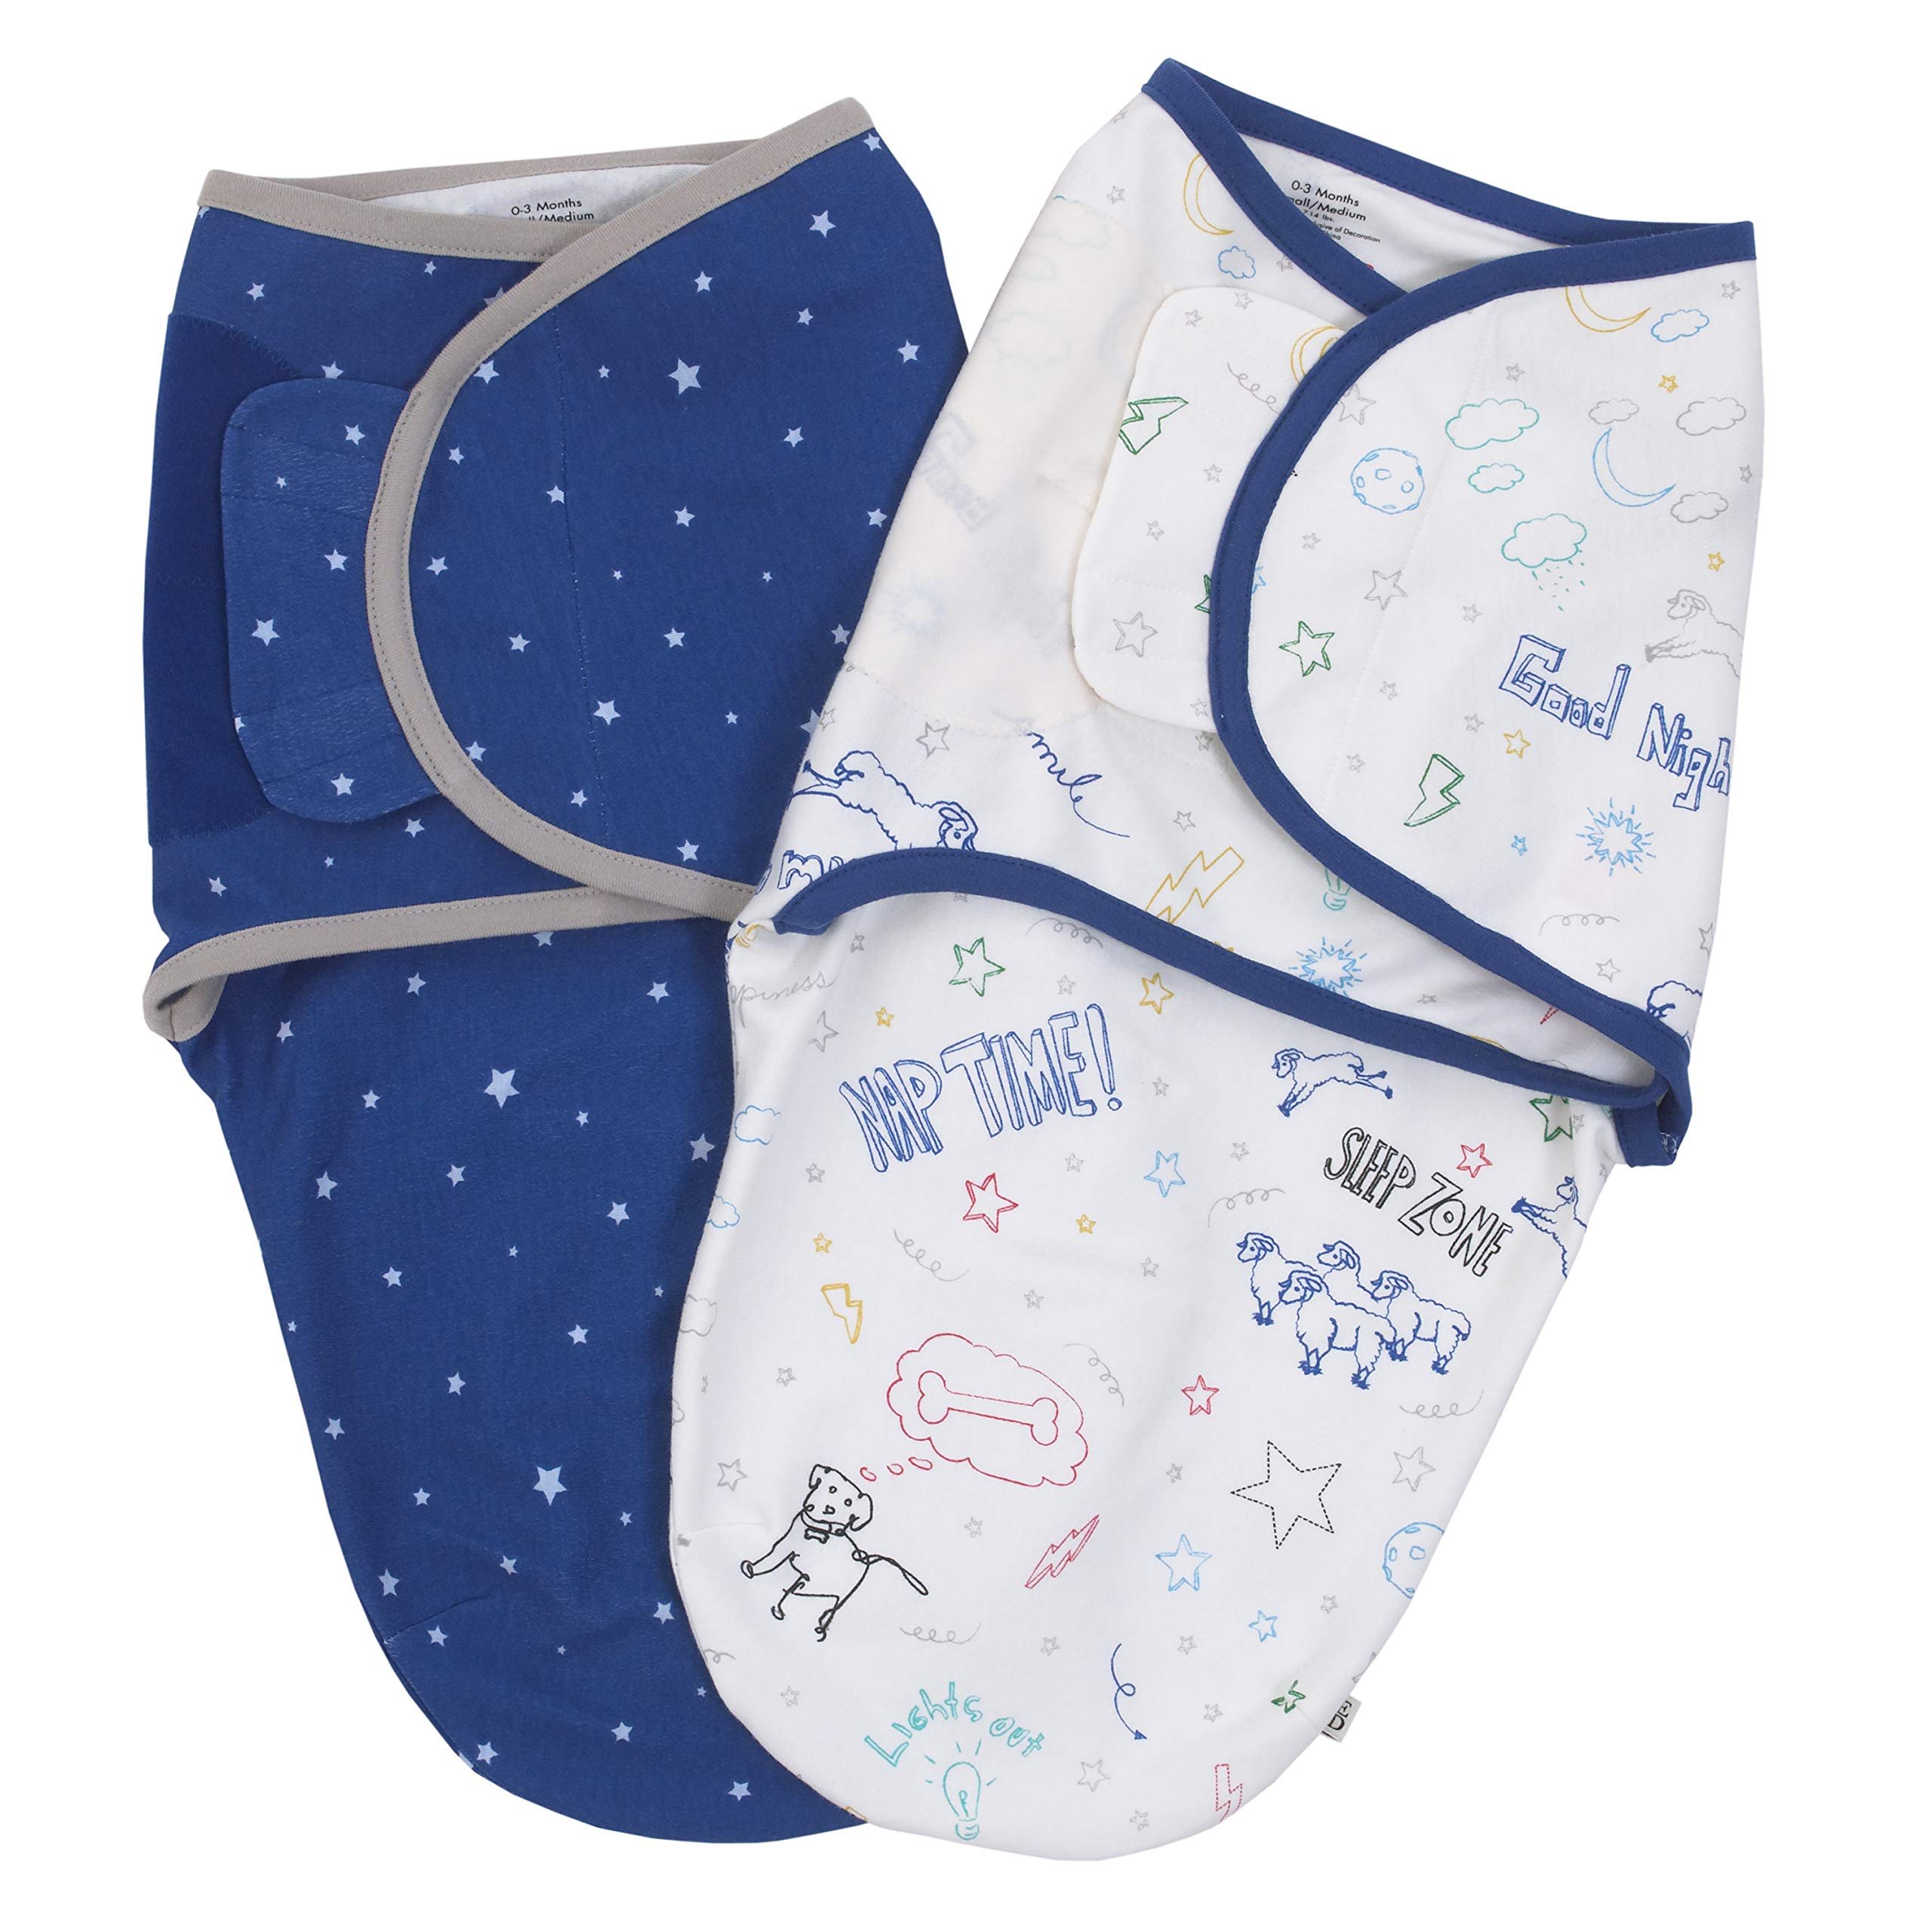 ED Ellen DeGeneres Doodle Dog - Soft 100% Cotton Knit Navy, Grey Stars & All-Over Doodle Print 2 Pack Swaddle Baby Blankets, Navy, White, Red, Yellow by ED Ellen DeGeneres